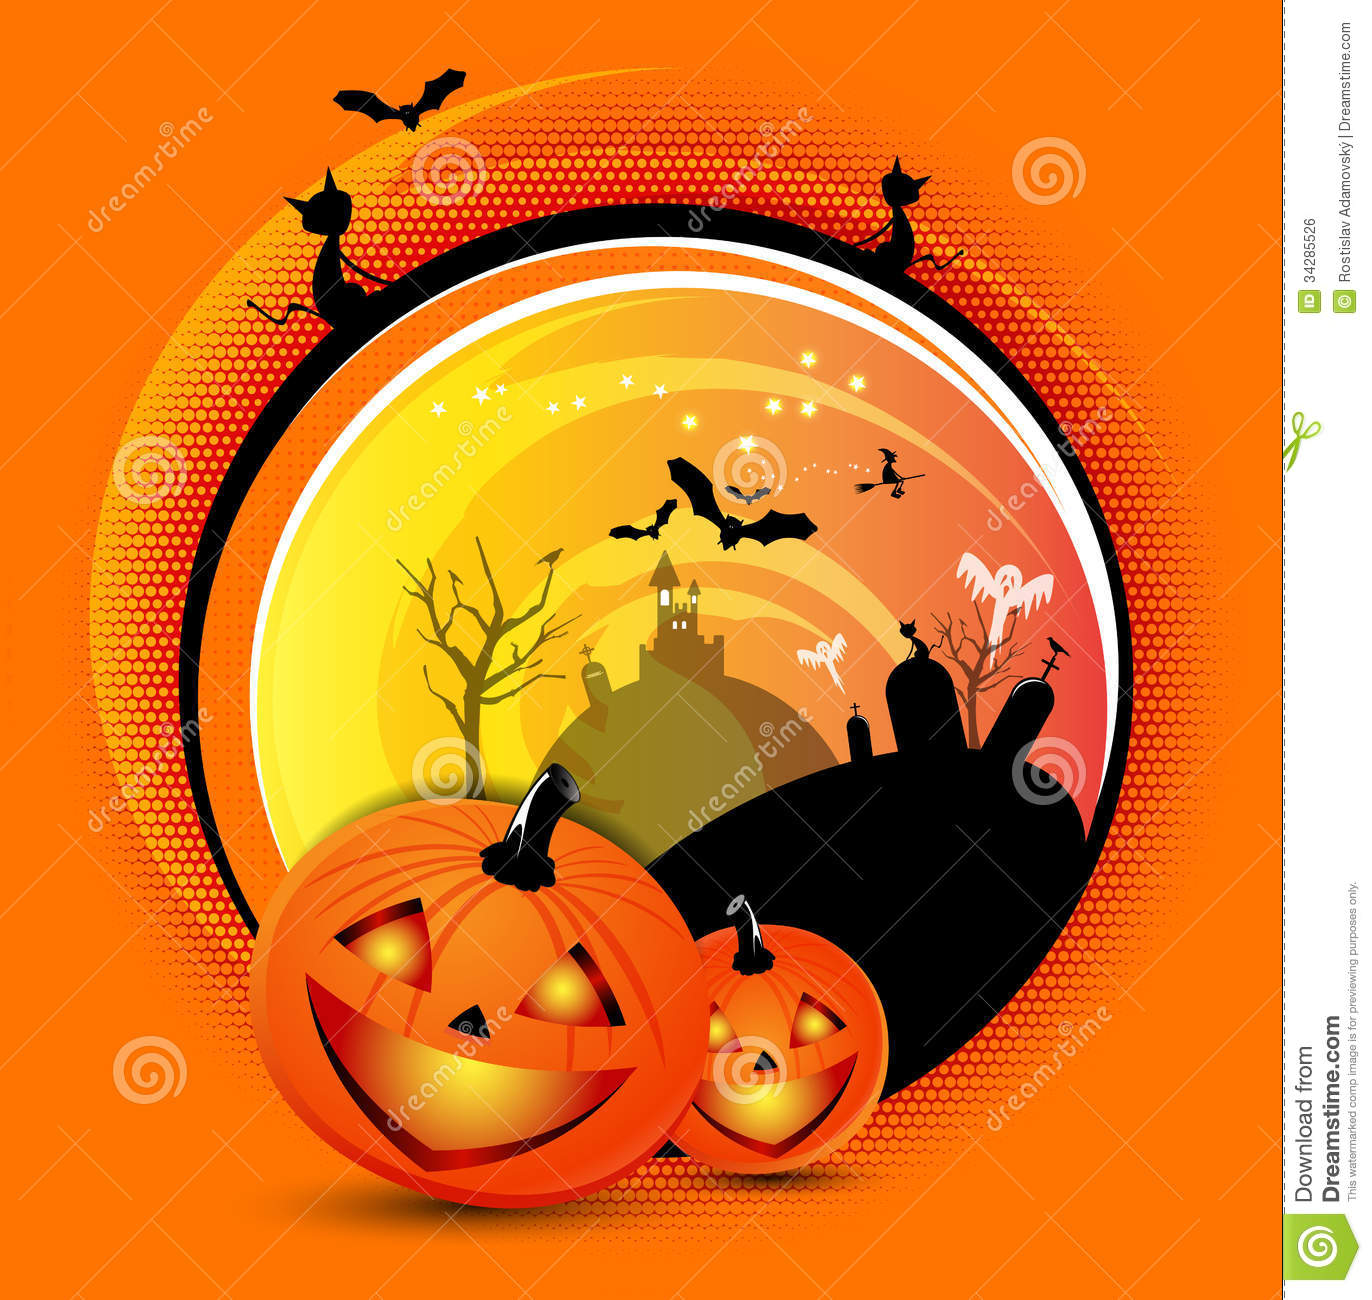 Vector Orange Halloween Spooky Background Royalty Free Stock Image  Image 34285526